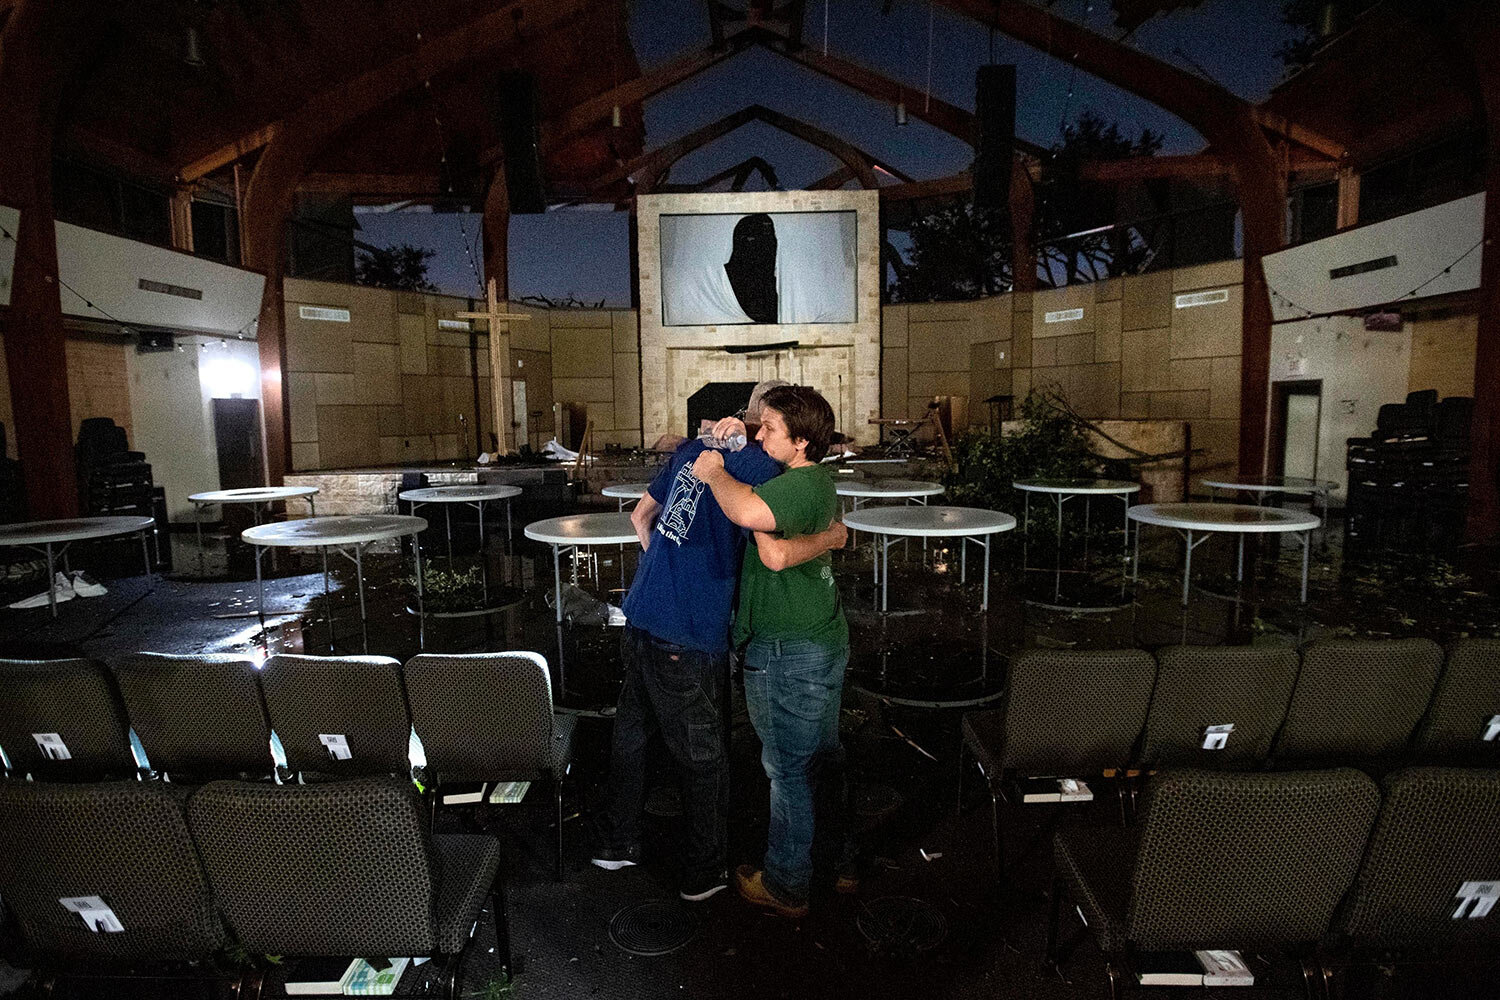 Matt Younger, right, a pastor at Northway Church, embraces facilities associate Robert Lusk in their church's severely damaged sanctuary on Sunday, Oct. 20, 2019, after a tornado tore through North Dallas. (AP Photo/Jeffrey McWhorter)